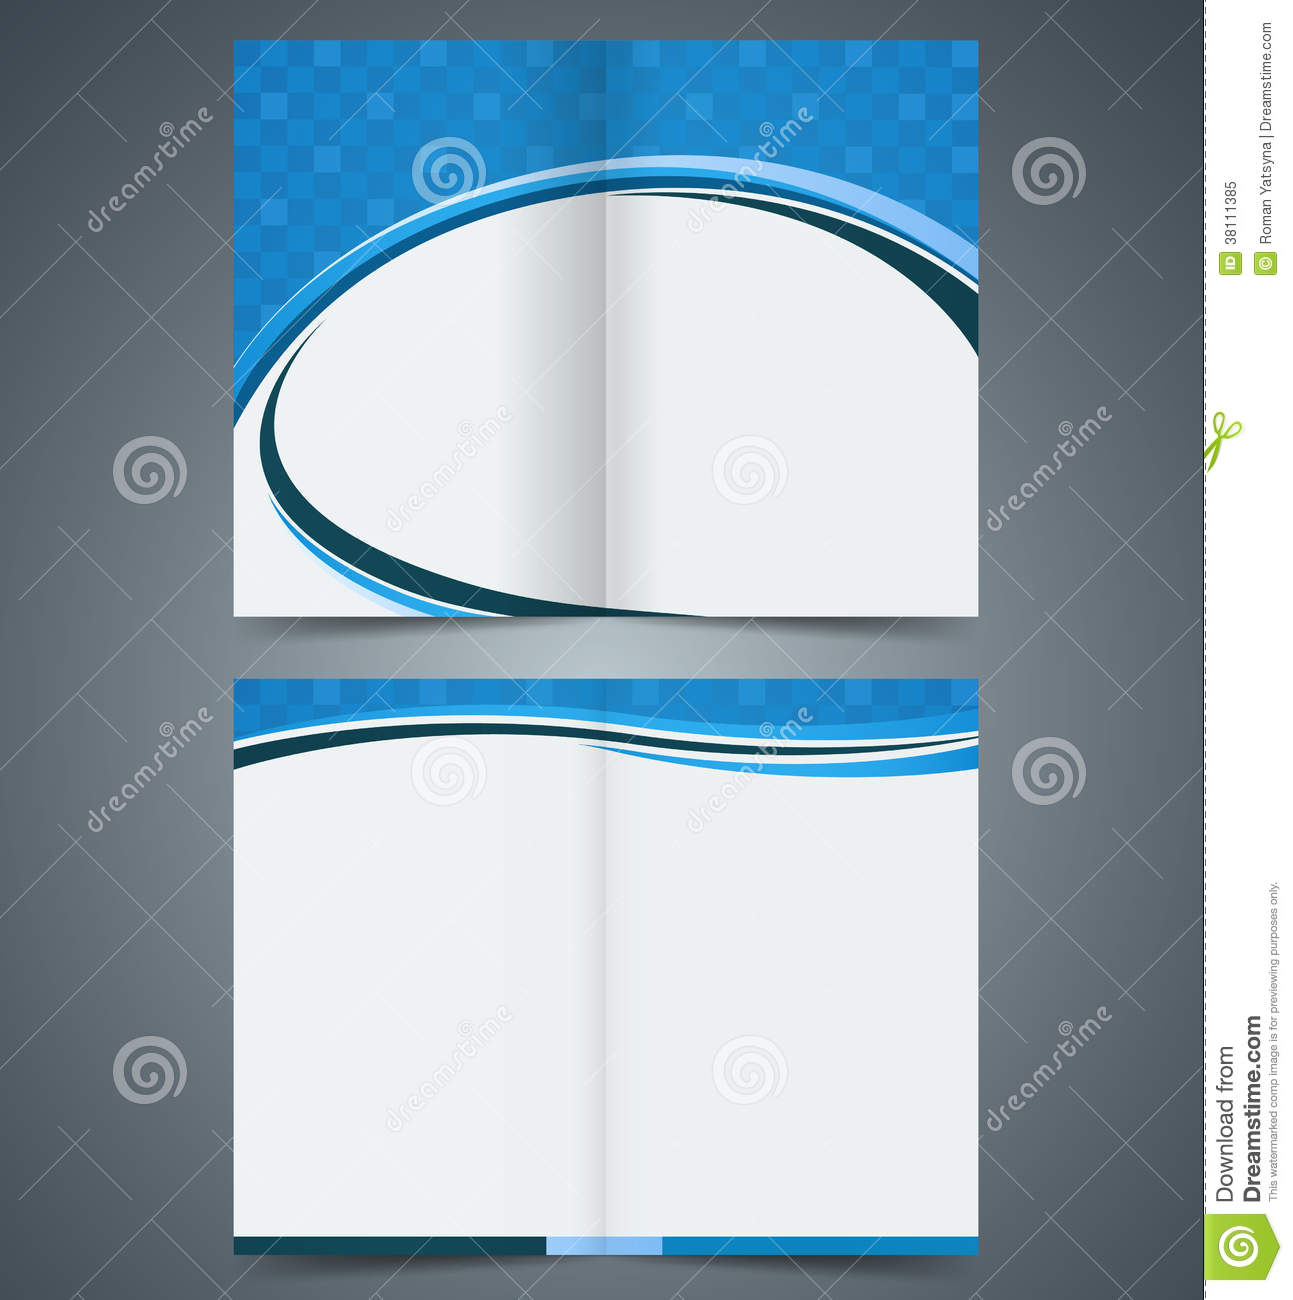 free blank bi fold brochure template - Ideal.vistalist.co